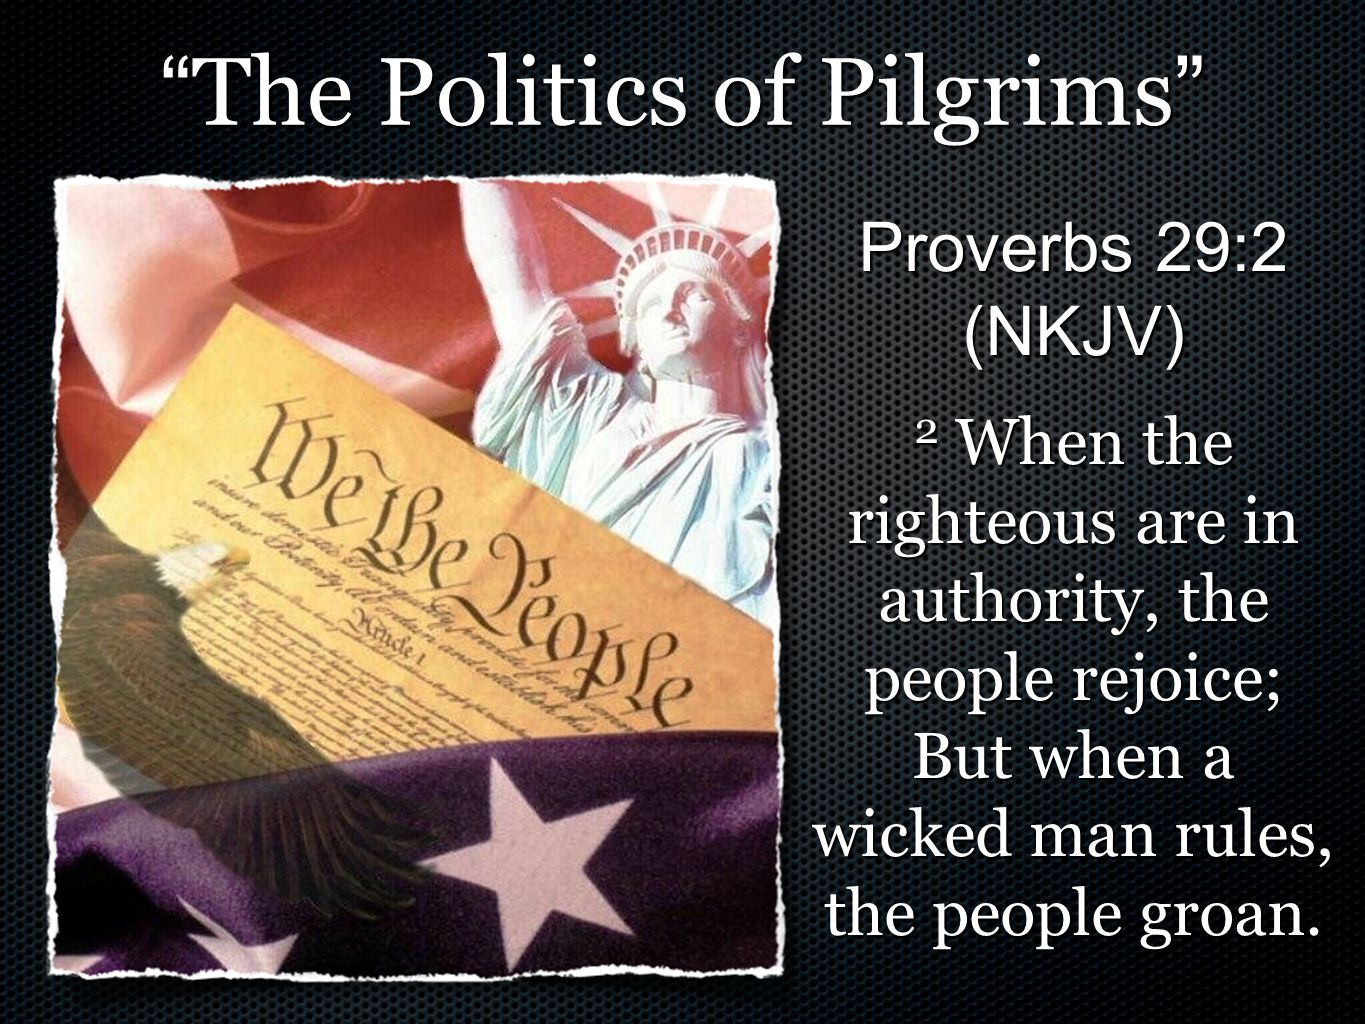 The Politics of Pilgrims Antagonistic to the cross of Christ - 3:18; Rom 1:18 Appetites that are sensual - 3:19; Rom 1:21-32 Take pride in their wickedness - 3:19; Rev.